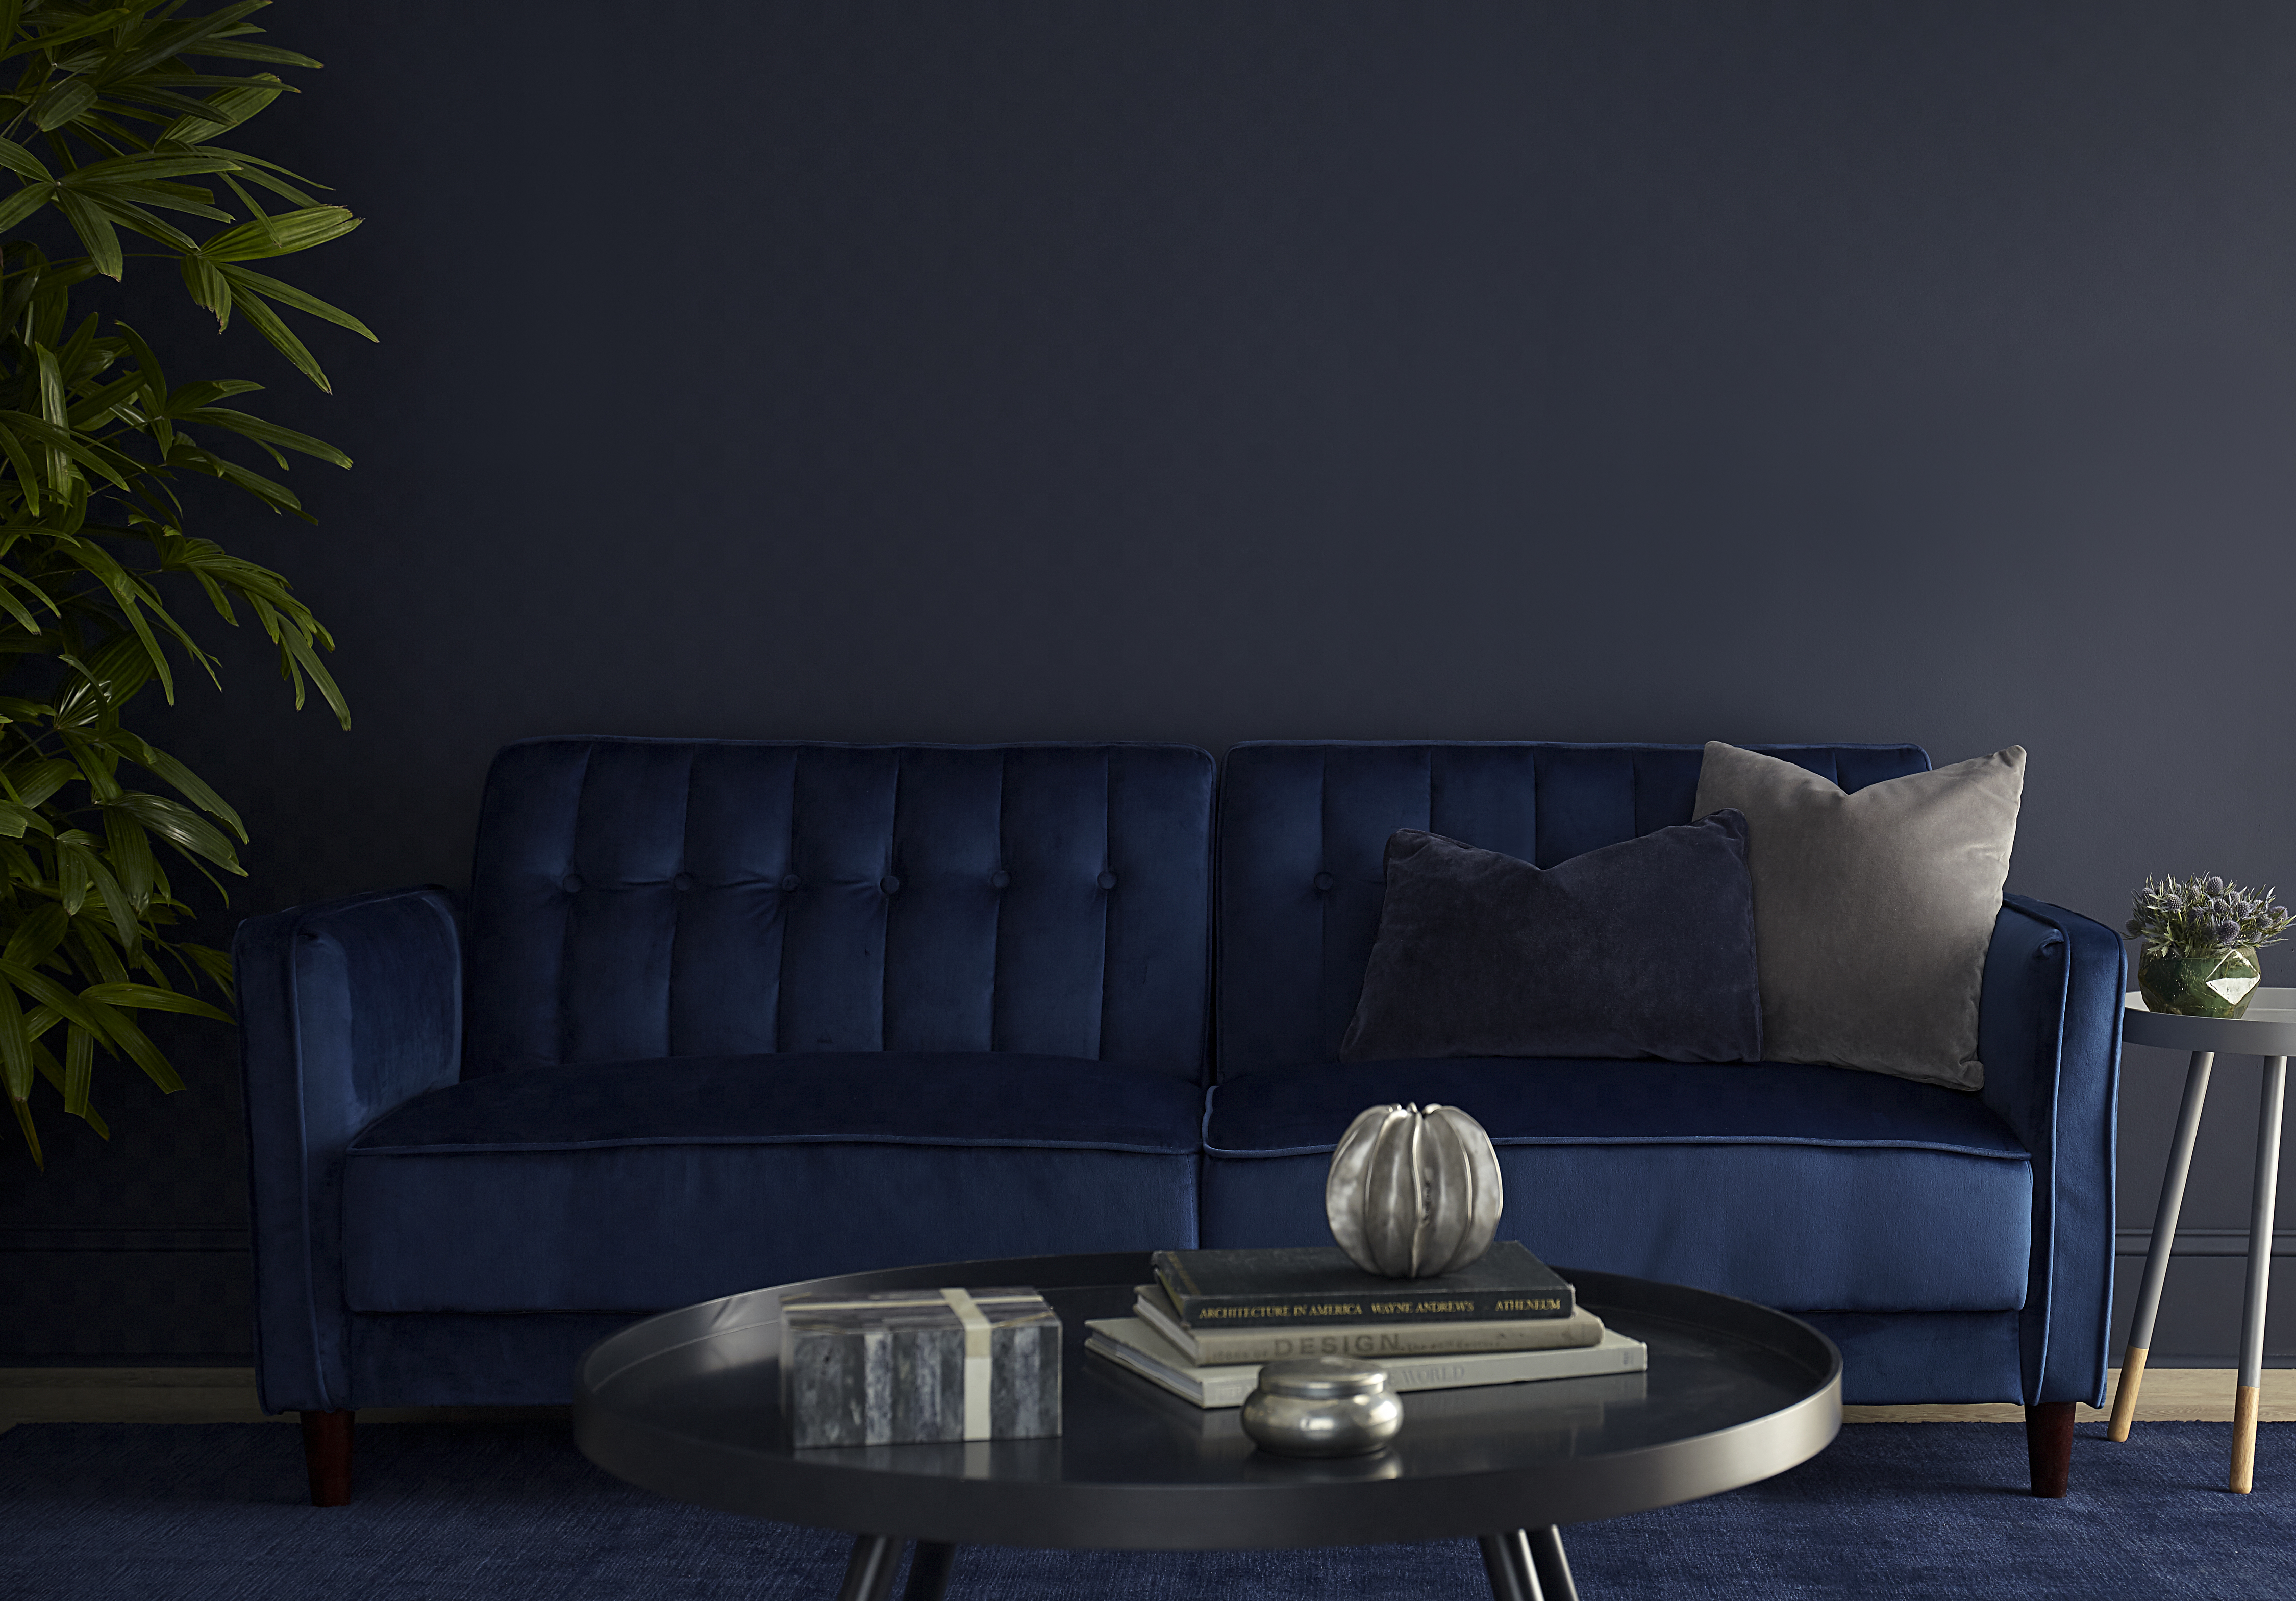 Dark Paint Inspiration for Your Living Room